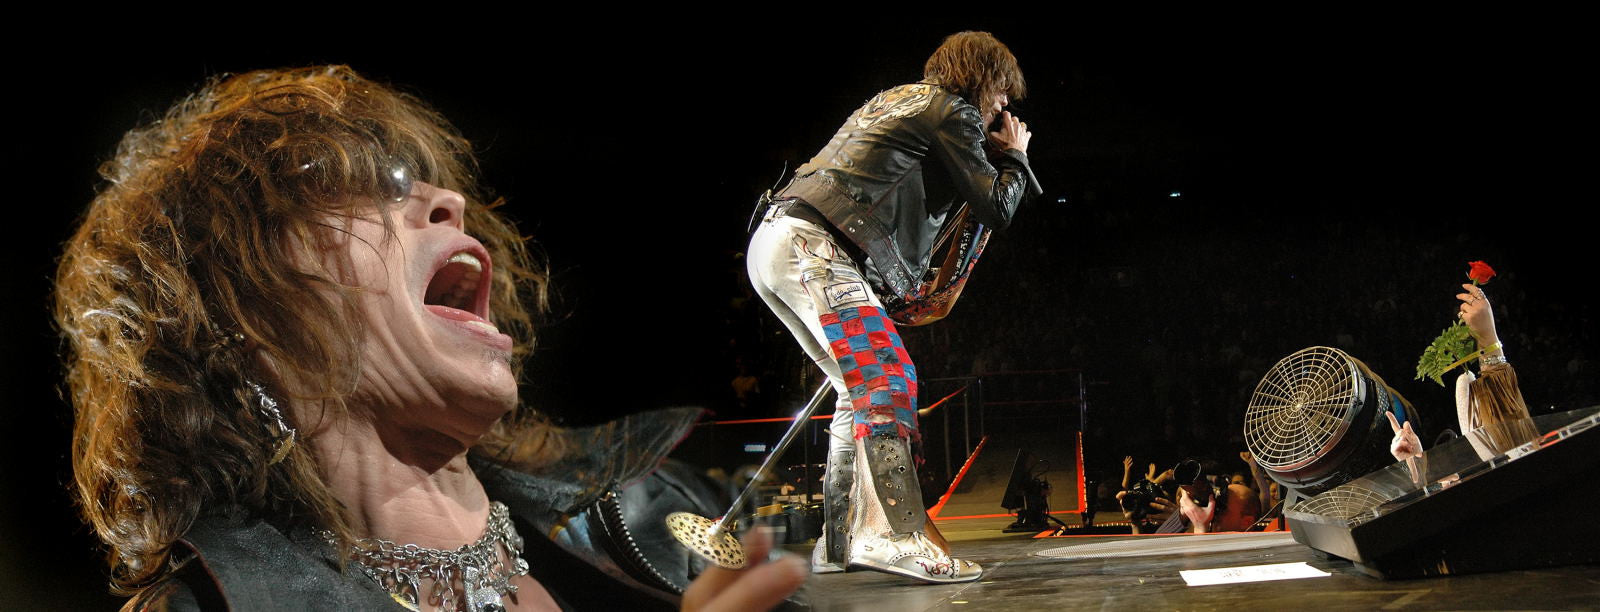 Steve Tyler lead singer Aerosmith in concert photo.